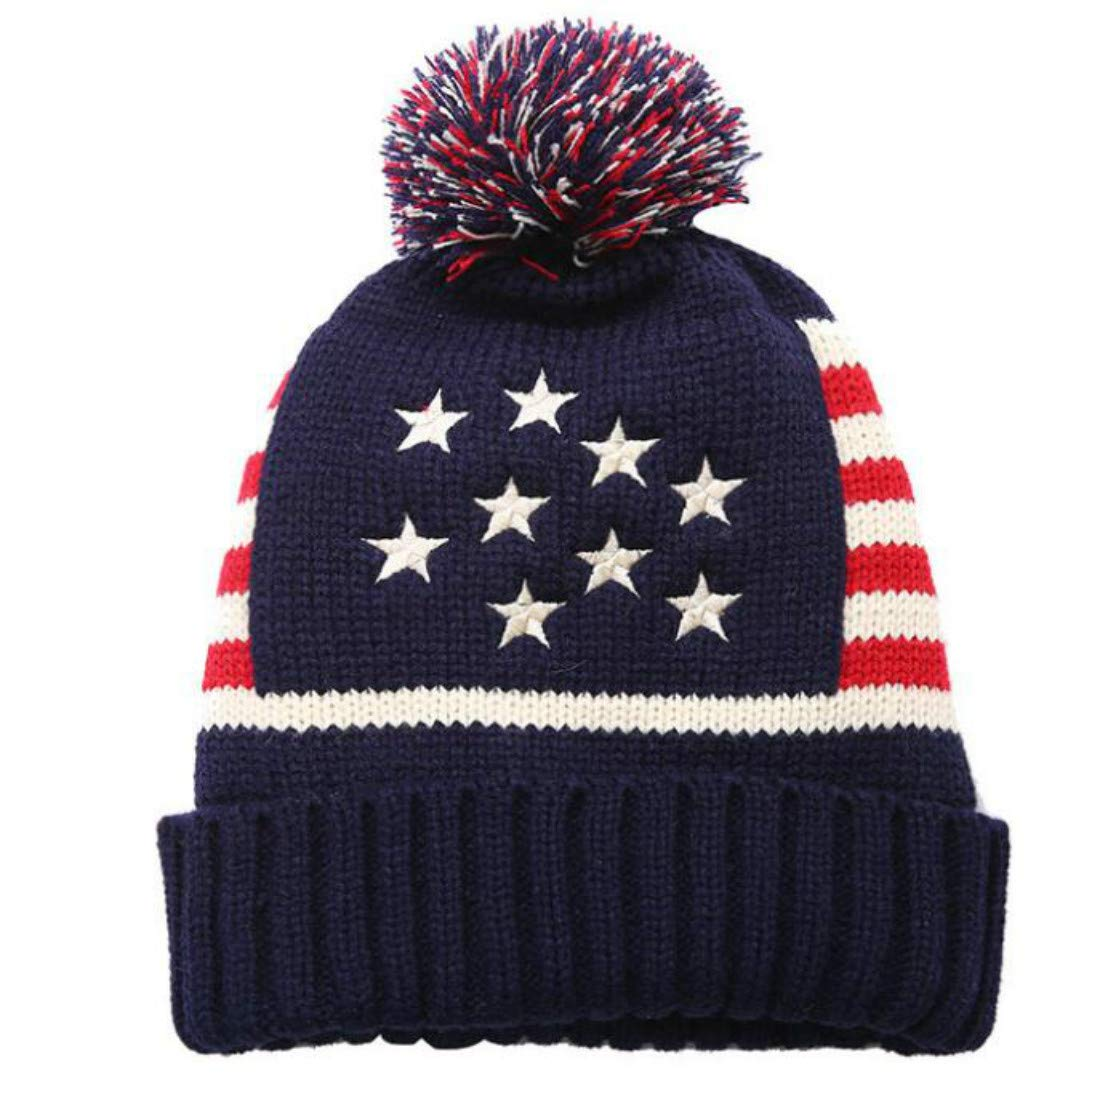 ZPAYFSDS Red White and Blue Patriotic American Flag Cuffed Beanie Cap USA Cuffed Knit Skull Cap